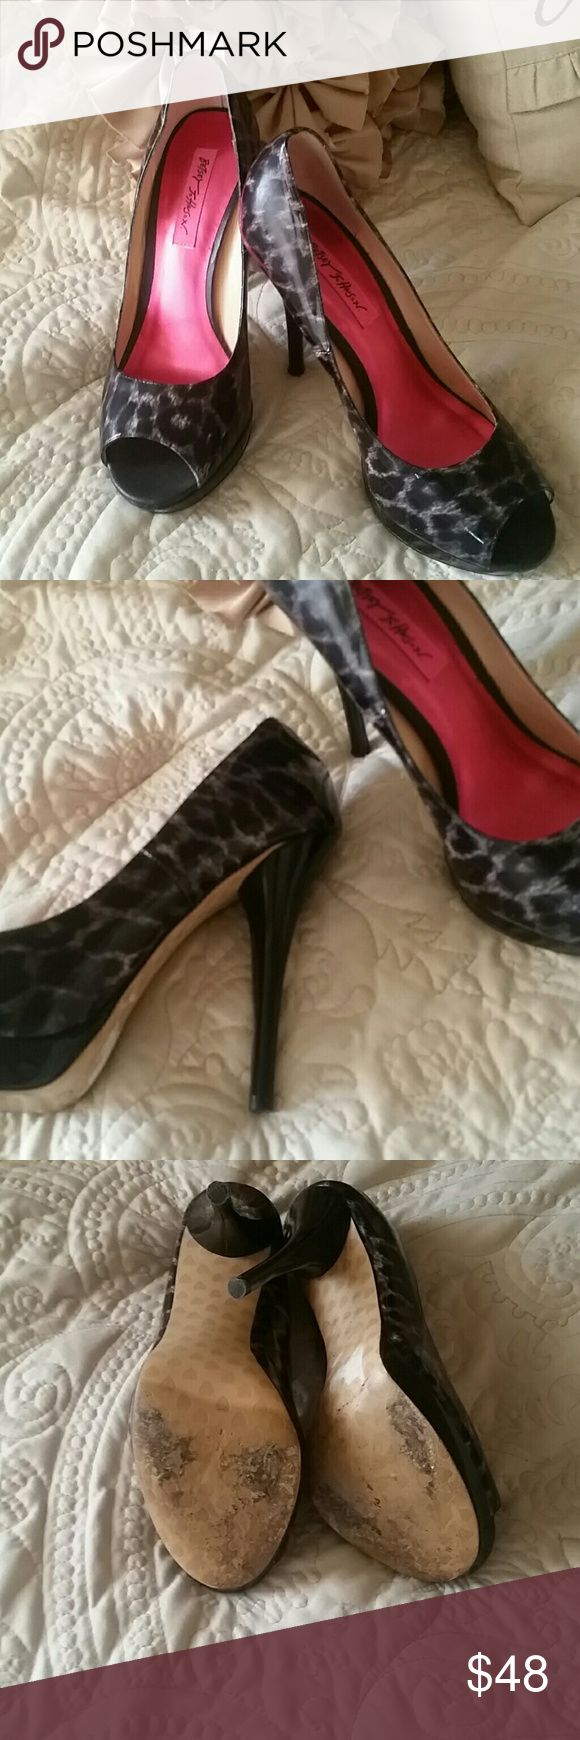 Sale!!! Betsey Johnson heels Black and gray animal print, open/peep toe, heels in excellent condition.  Worn once for homecoming dance. Small platform. 5 inch heel.  Does not have box Betsey Johnson Shoes Heels